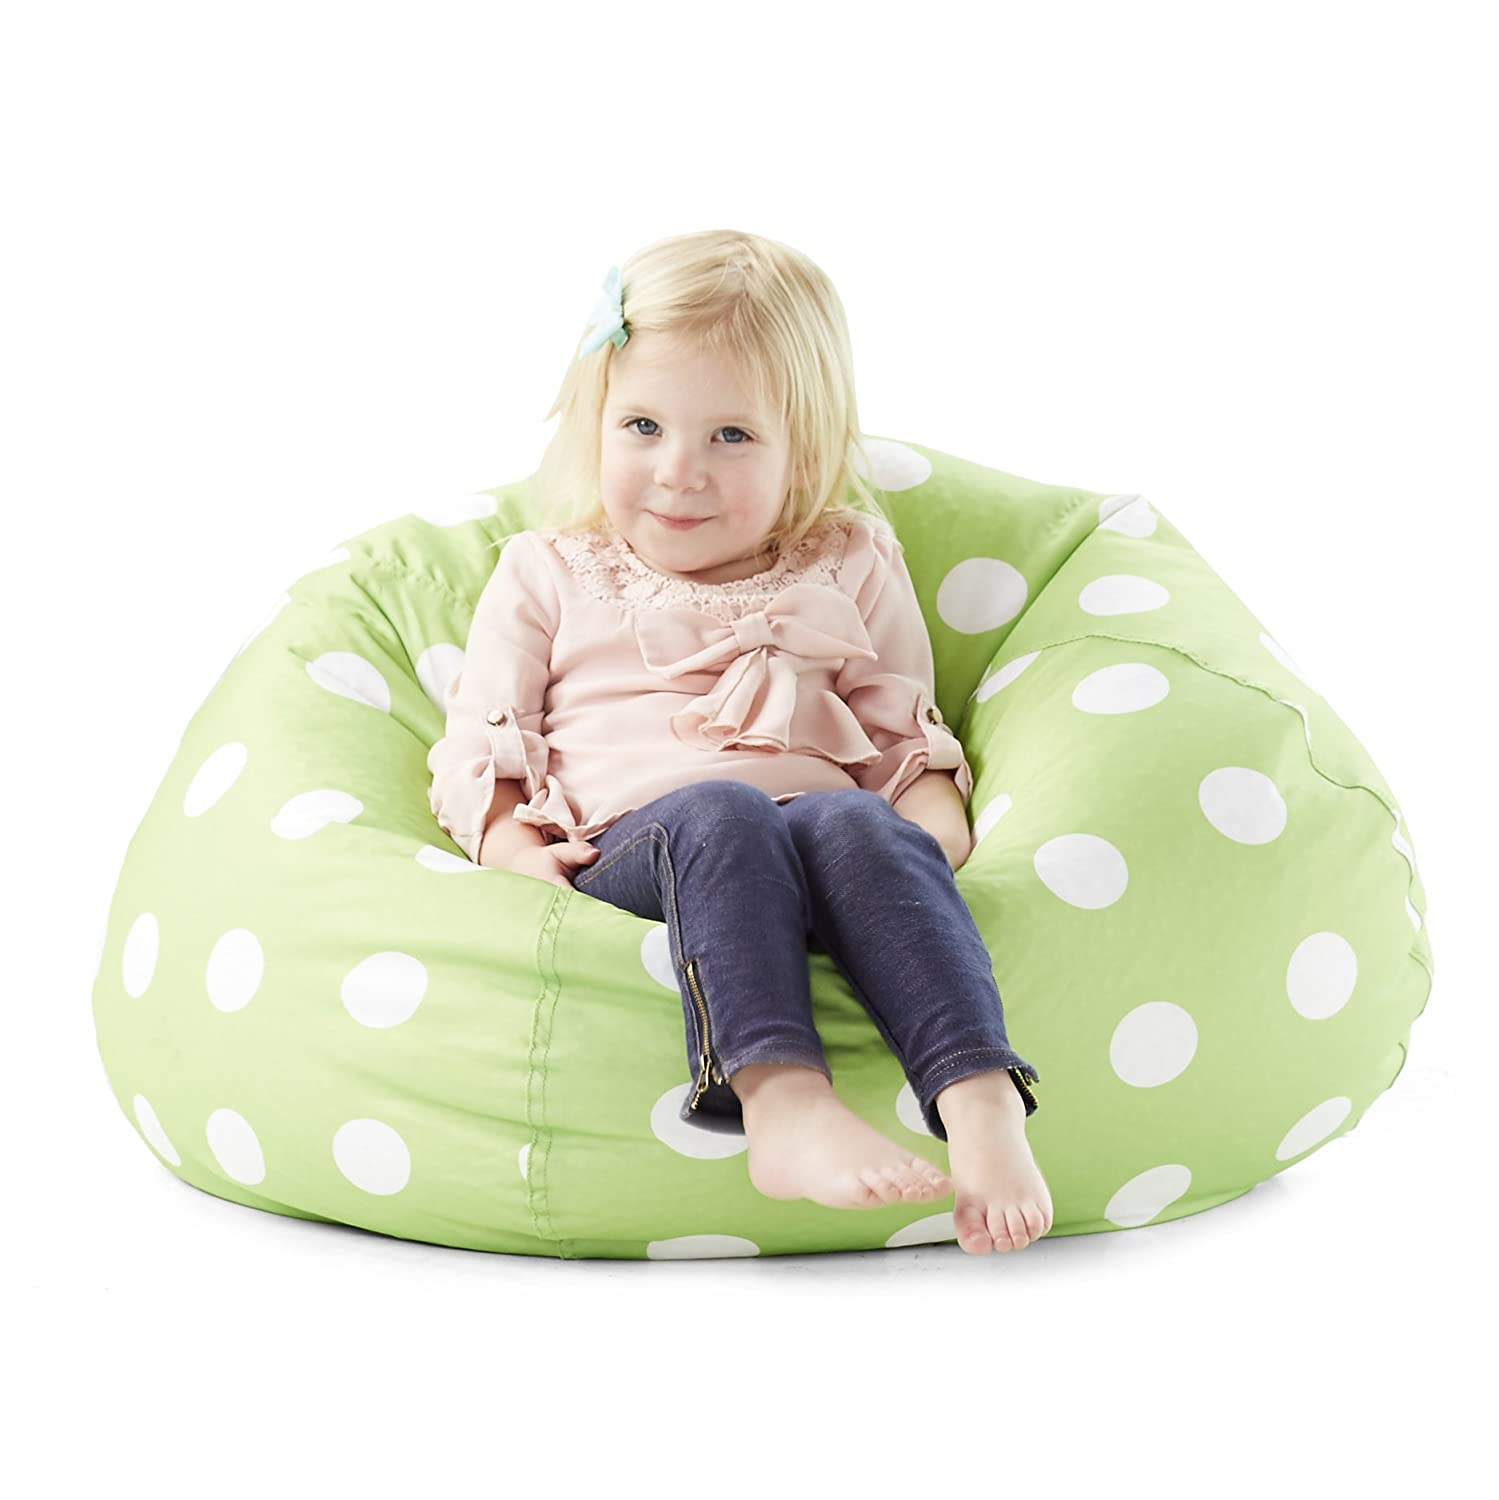 Lavendar with White Comfort Research Big Joe 0630252 Lavender Polka Dot Classic Bean Bag Chair